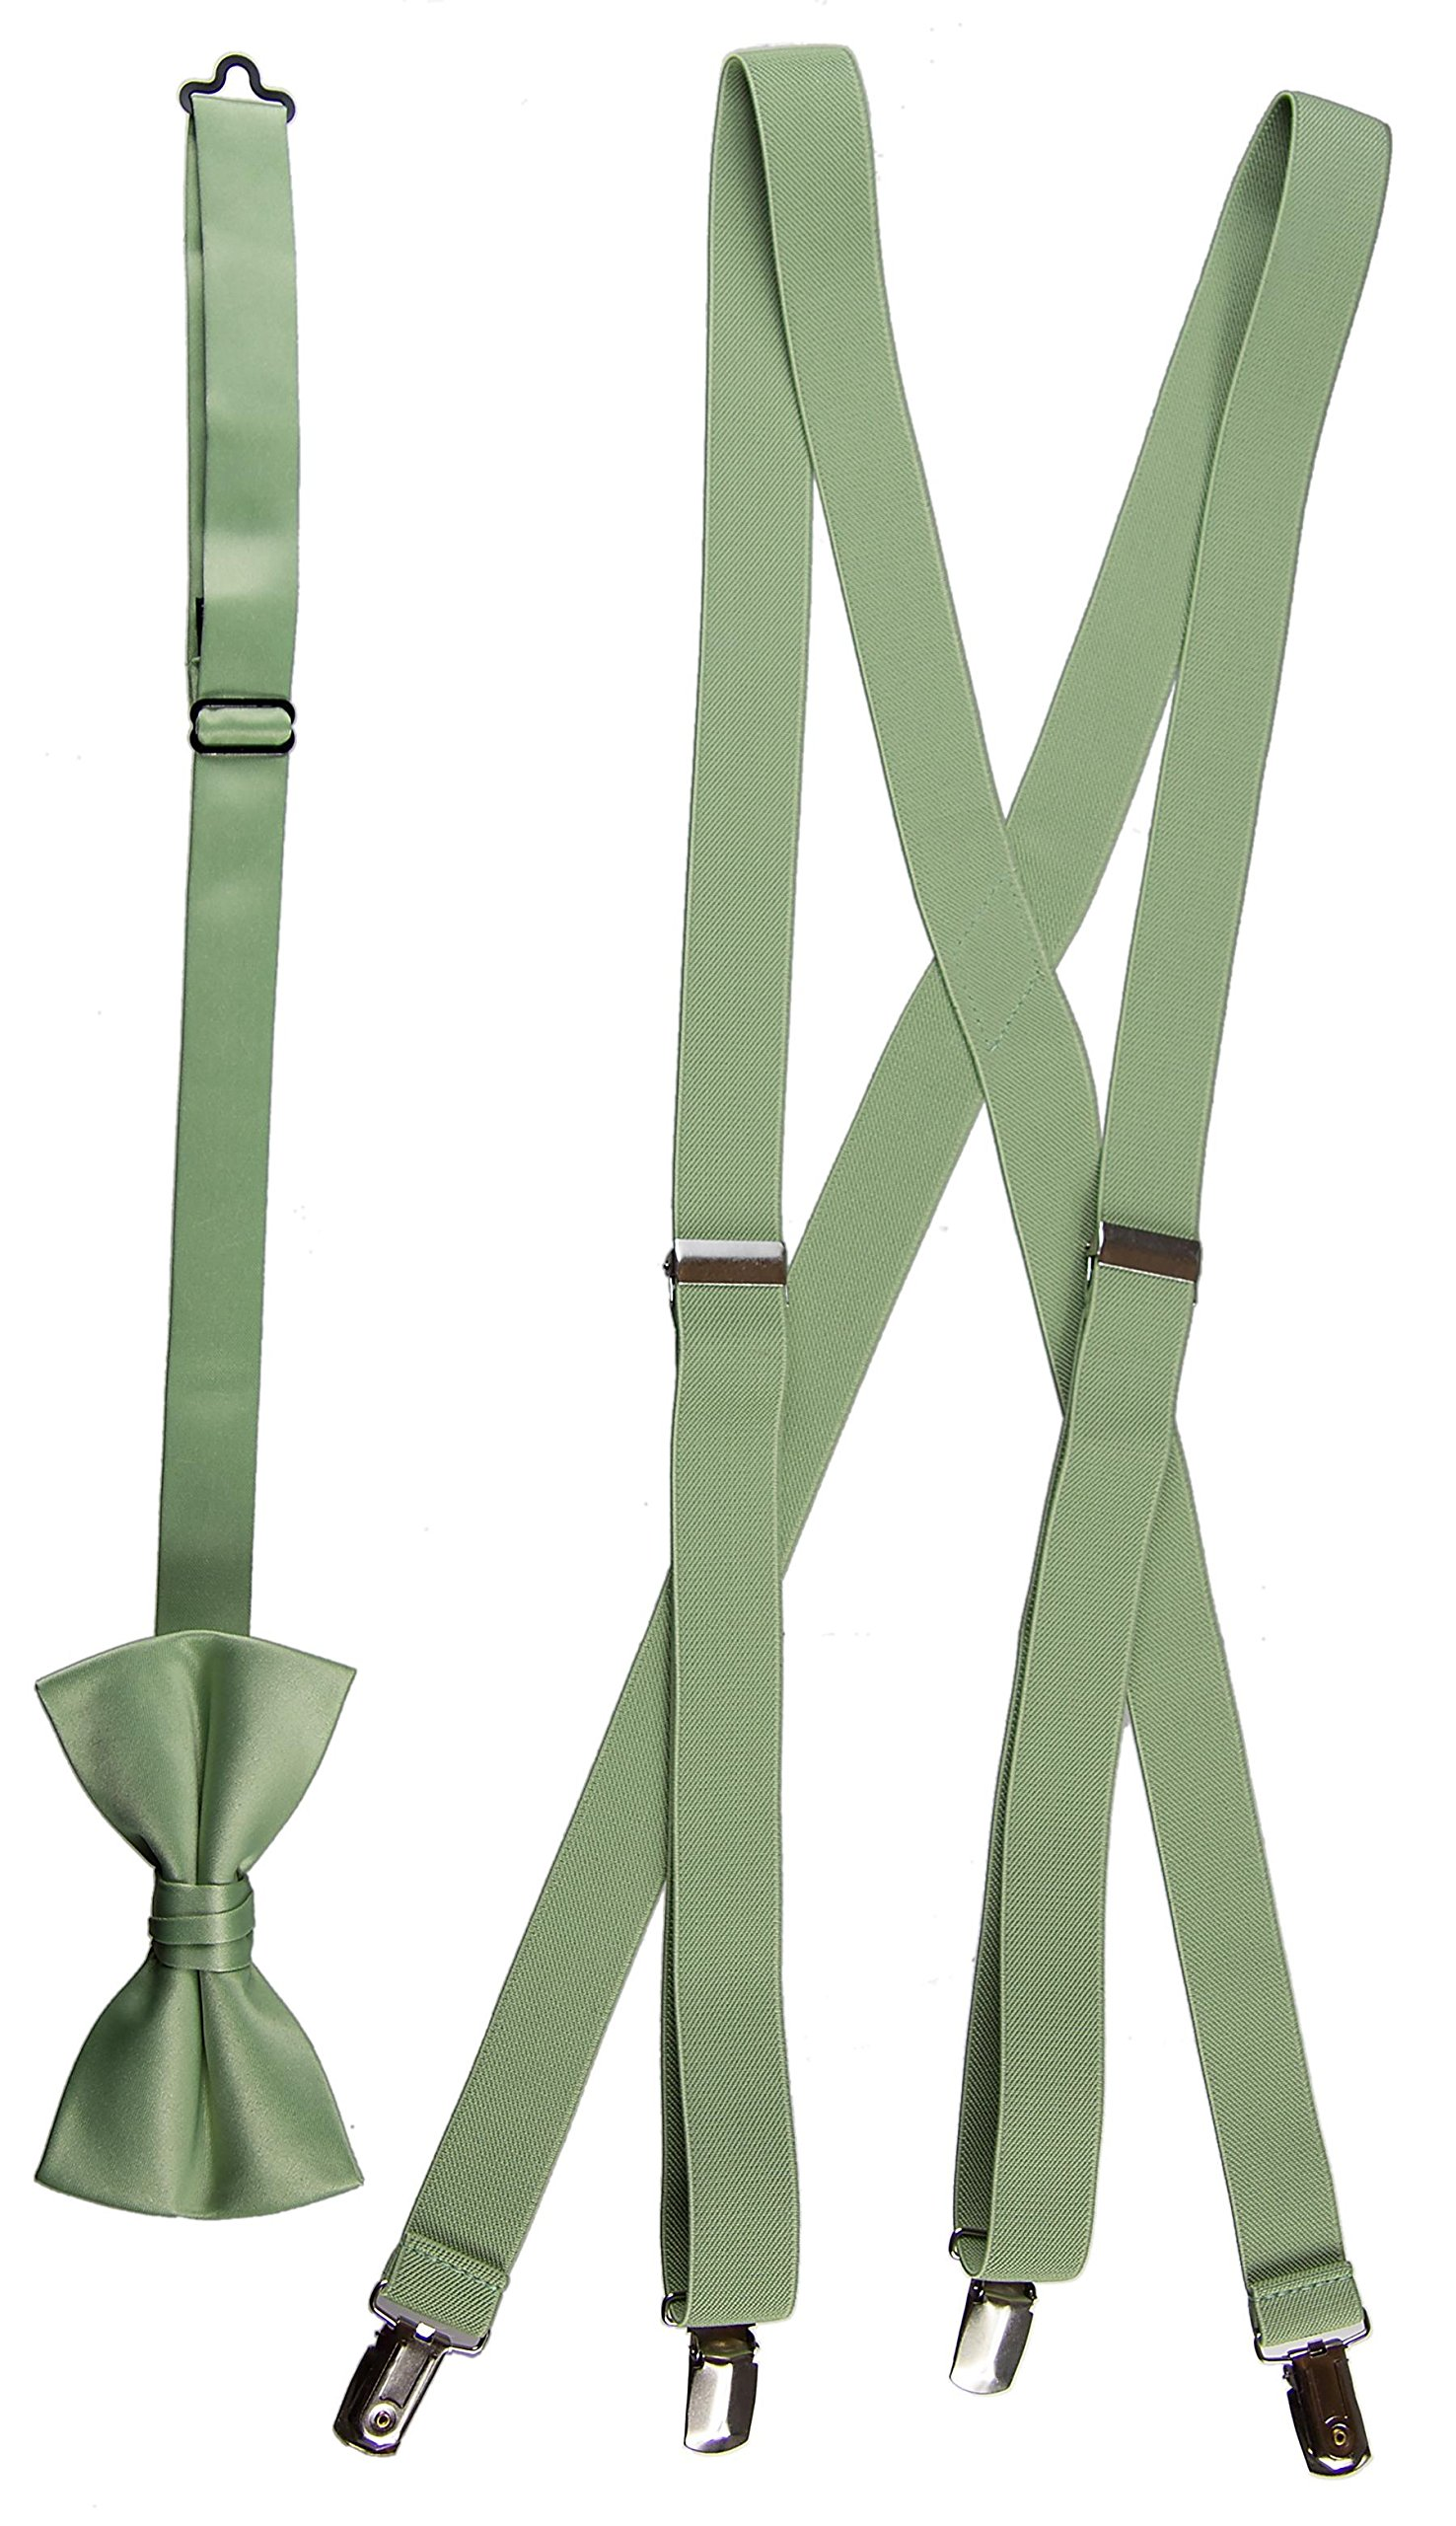 Tuxgear Boys Matching Adjustable Suspender and Bow Tie, Sage Green, Youths 40'' (Sage Green, Youths 40'')